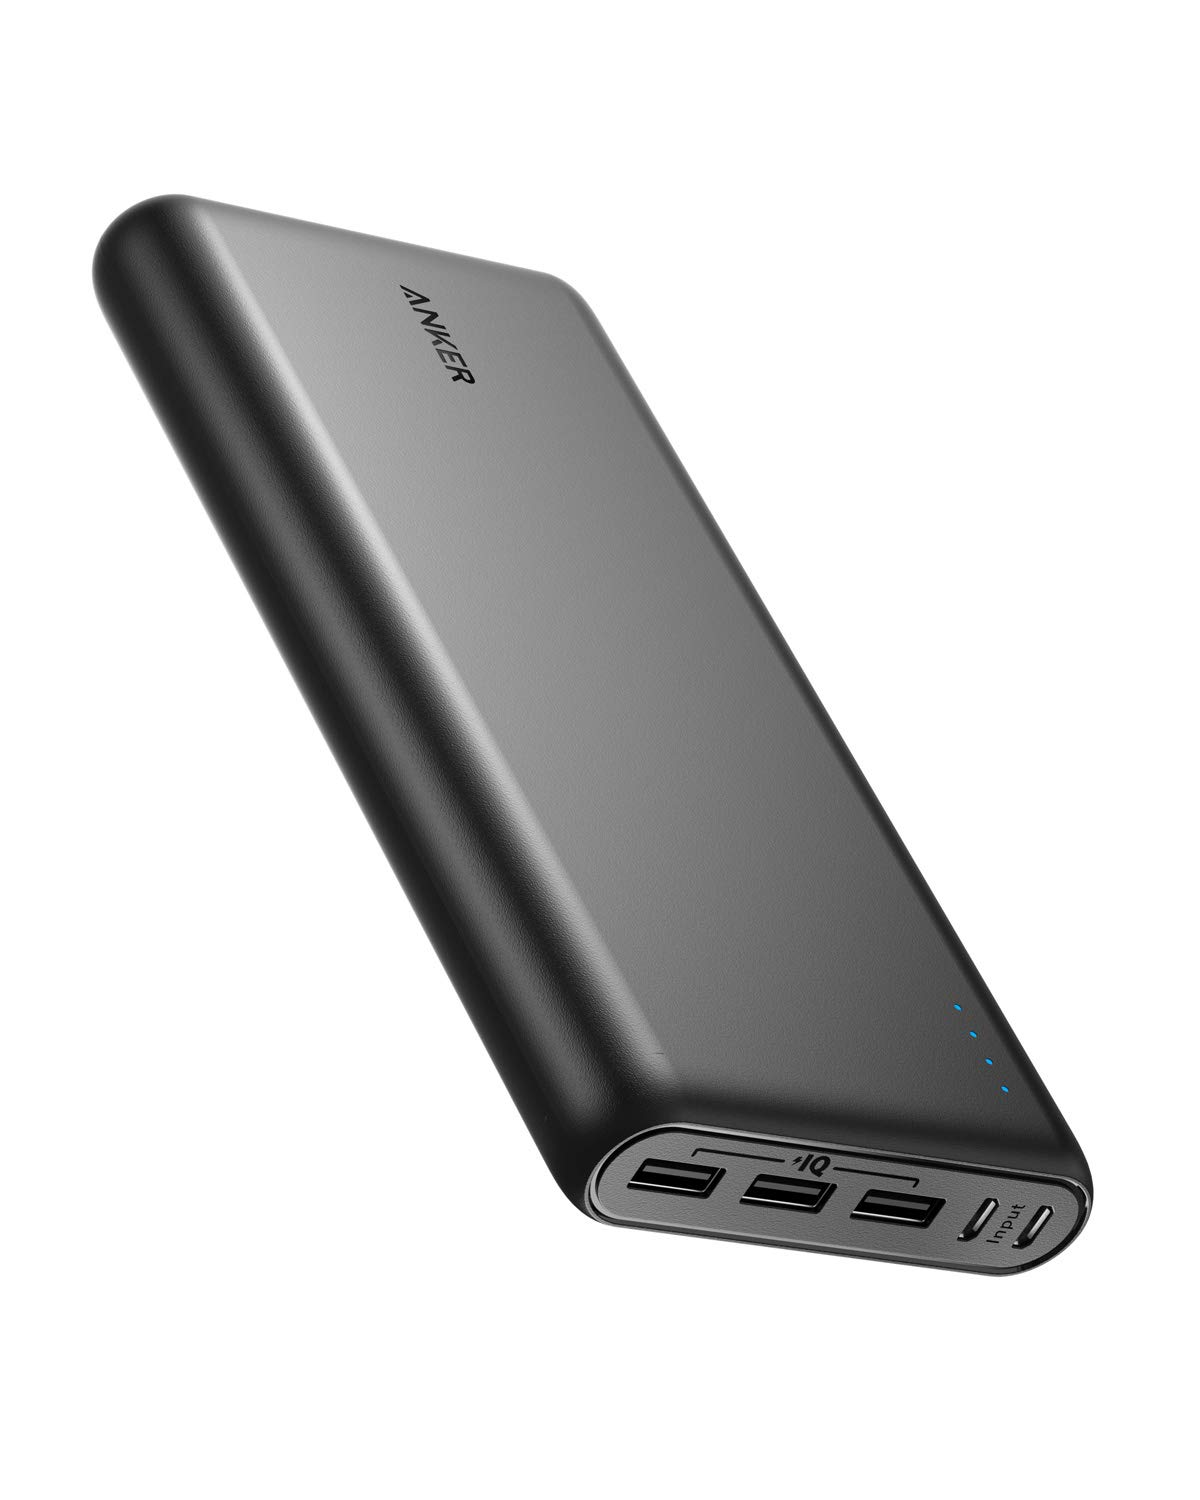 26800 mAh PowerCore Portable Charger With Dual Input Port And Double-Speed Recharging Black_2